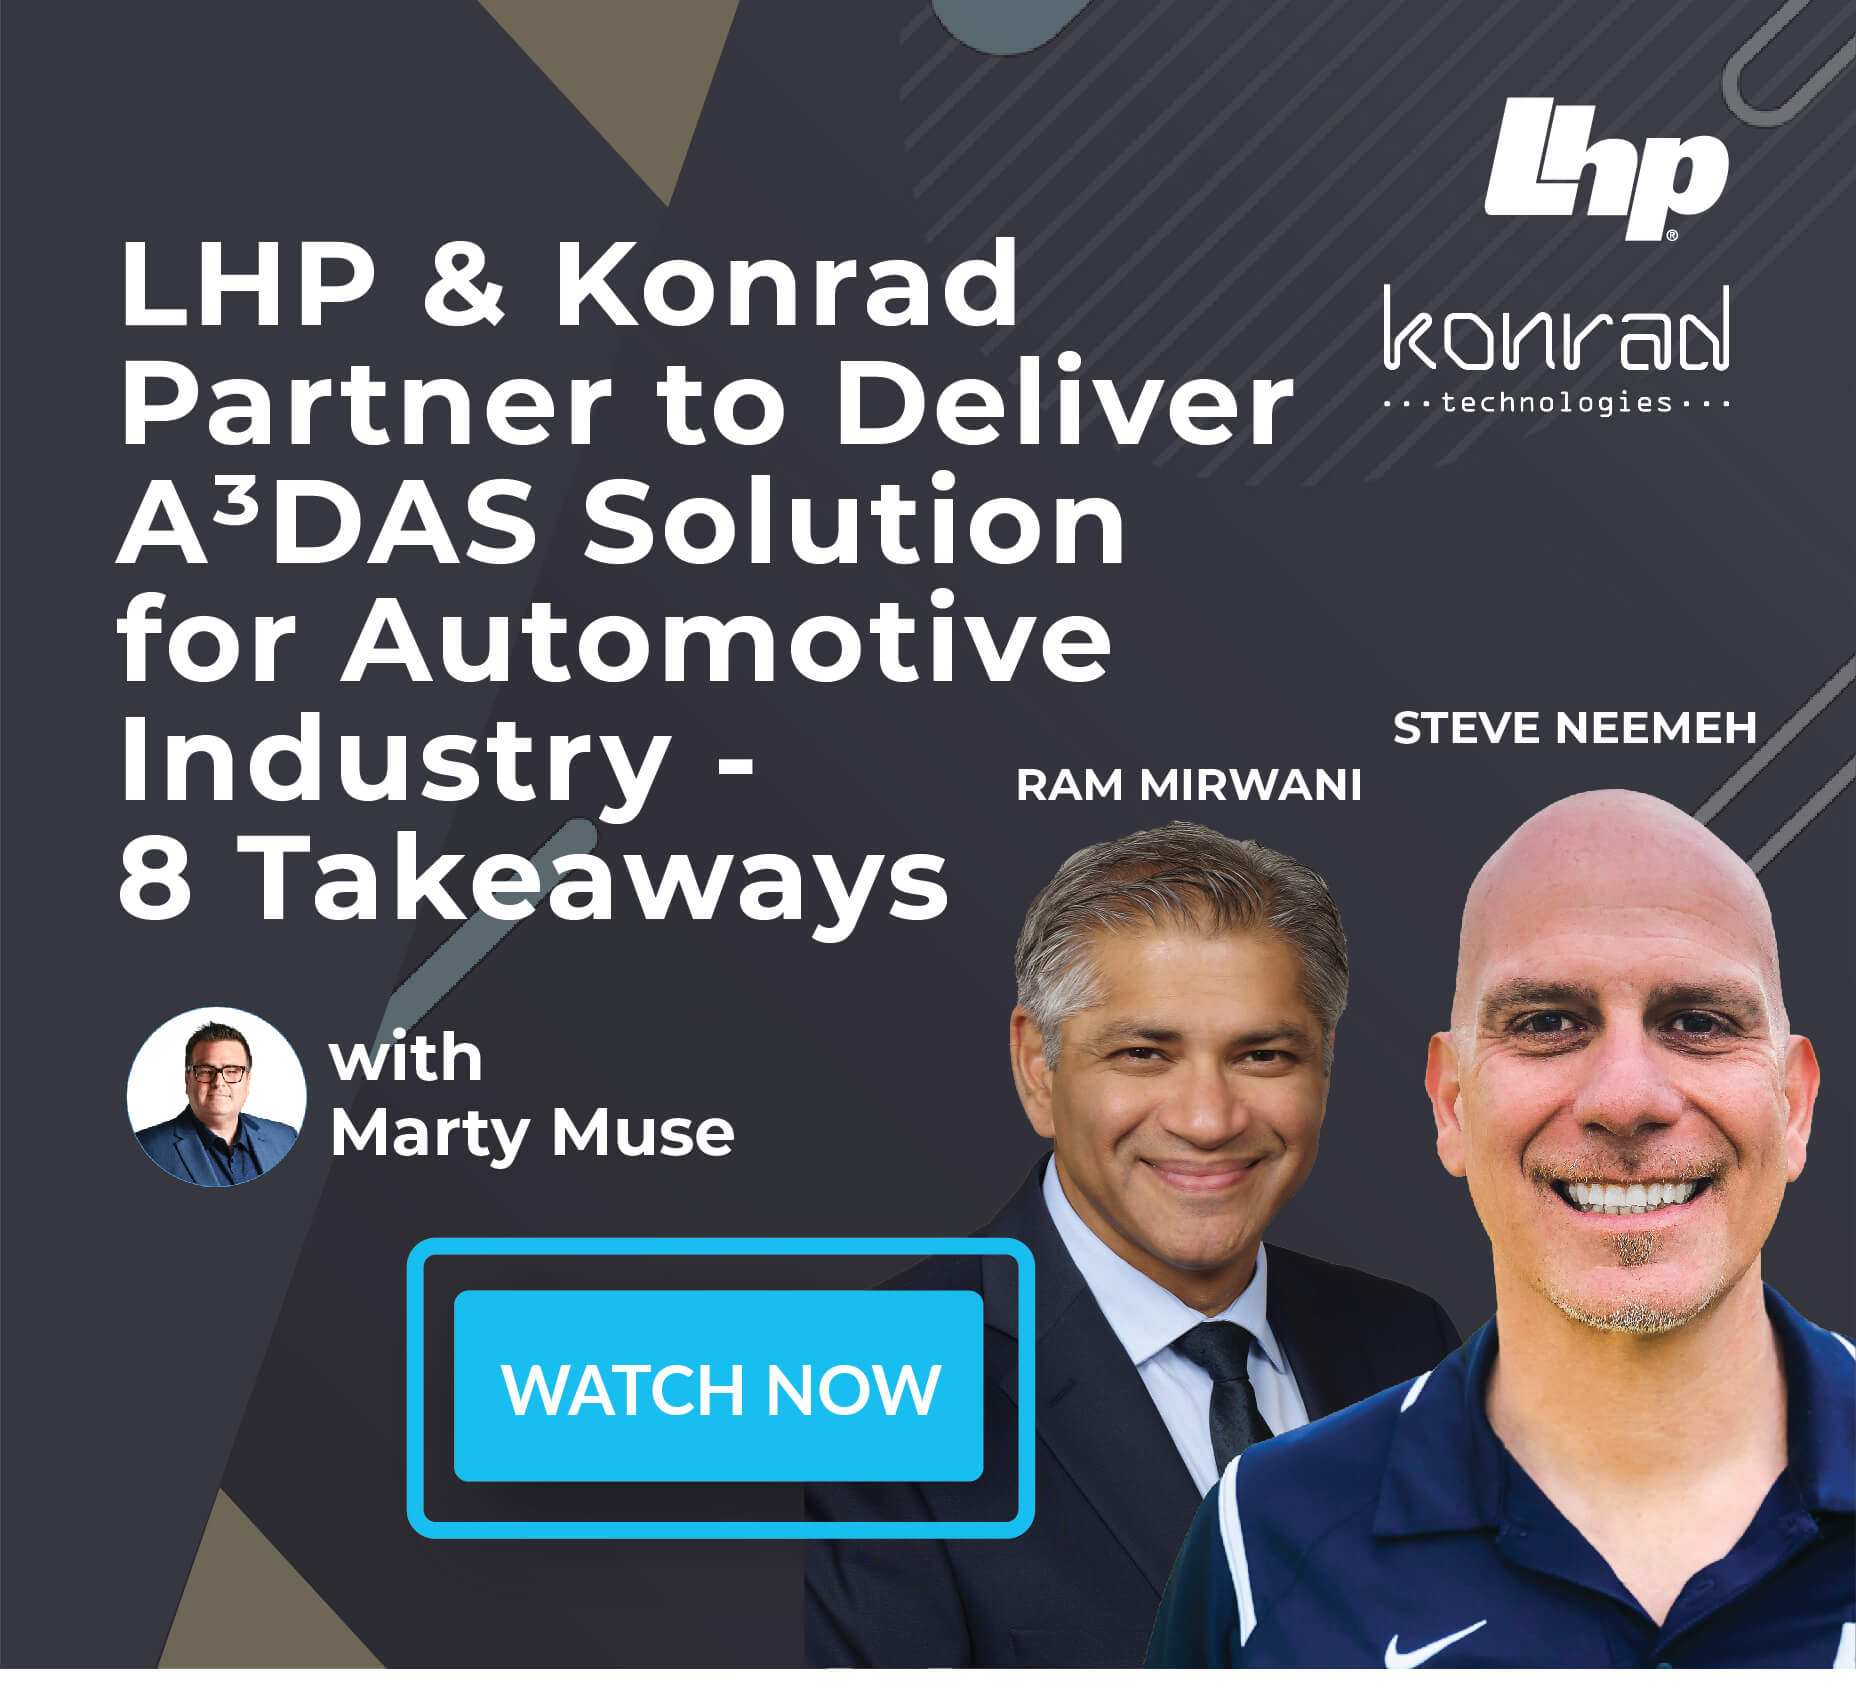 LHP and Konrad Technologies Collaborate to Deliver A³DAS Solution for the Automotive Industry - 8 Takeaways